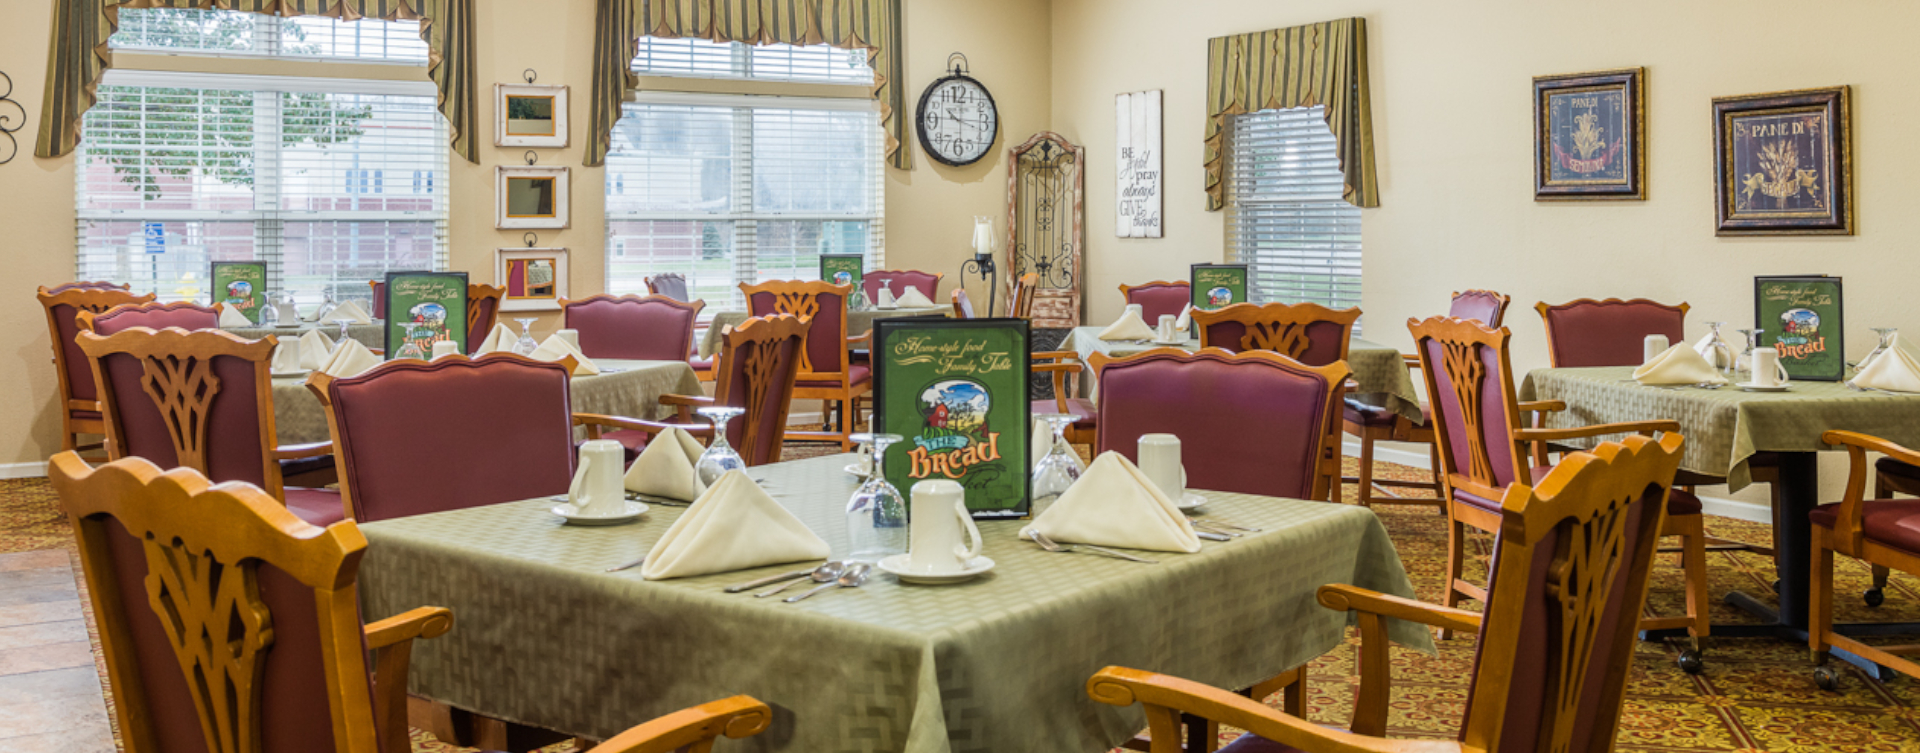 Enjoy restaurant -style meals served three times a day in our dining room at Bickford of Sioux City